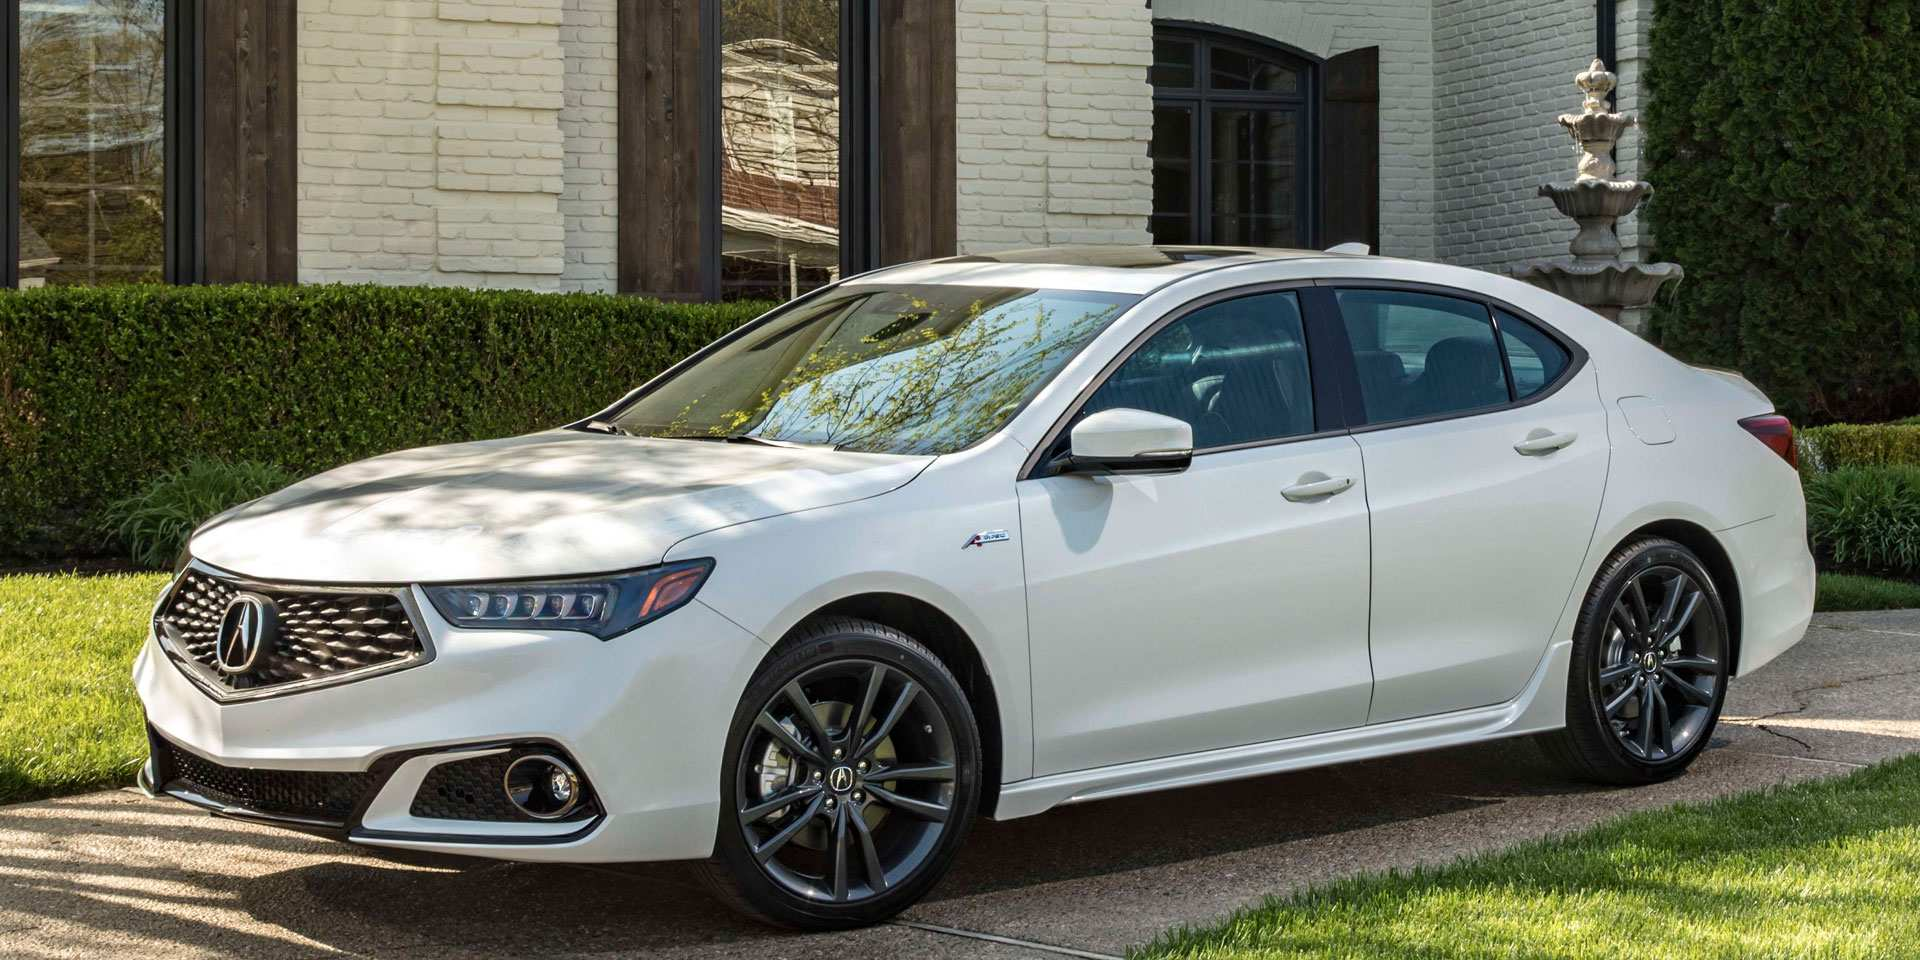 94 All New Acura Tlx 2020 Vs 2019 Concept And Review